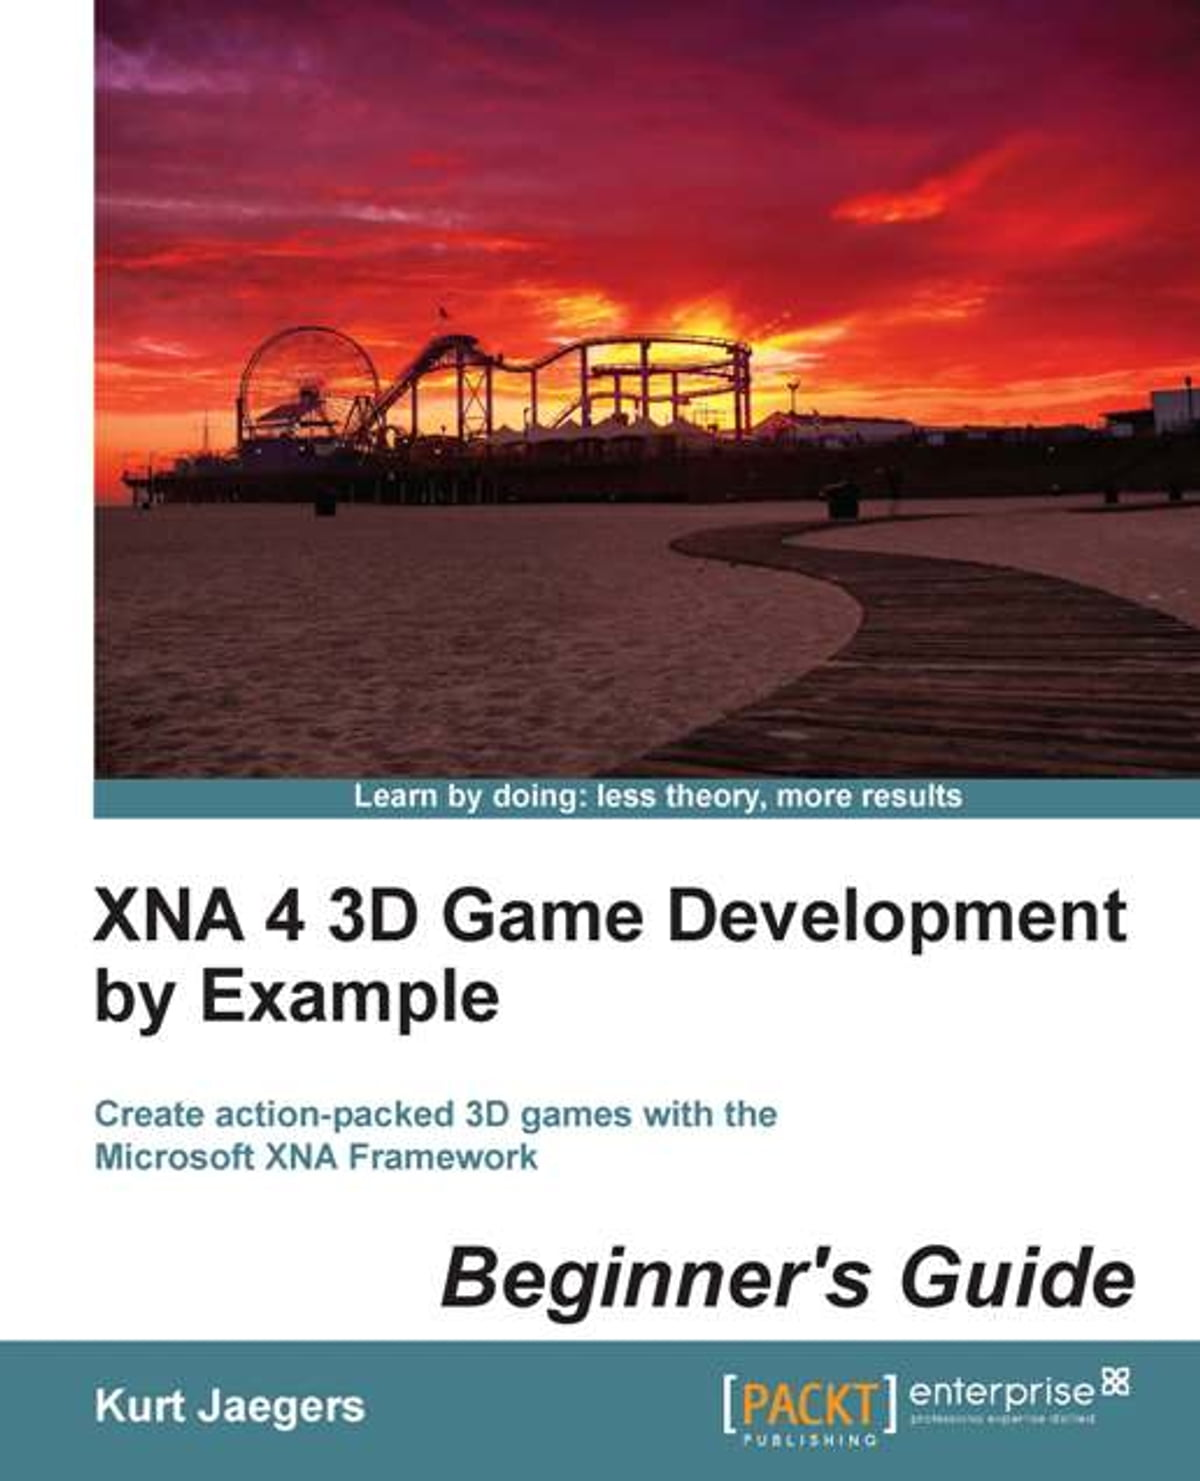 XNA 4 3D Game Development by Example: Beginner's Guide eBook by Kurt Jaegers  - 9781849687096 | Rakuten Kobo